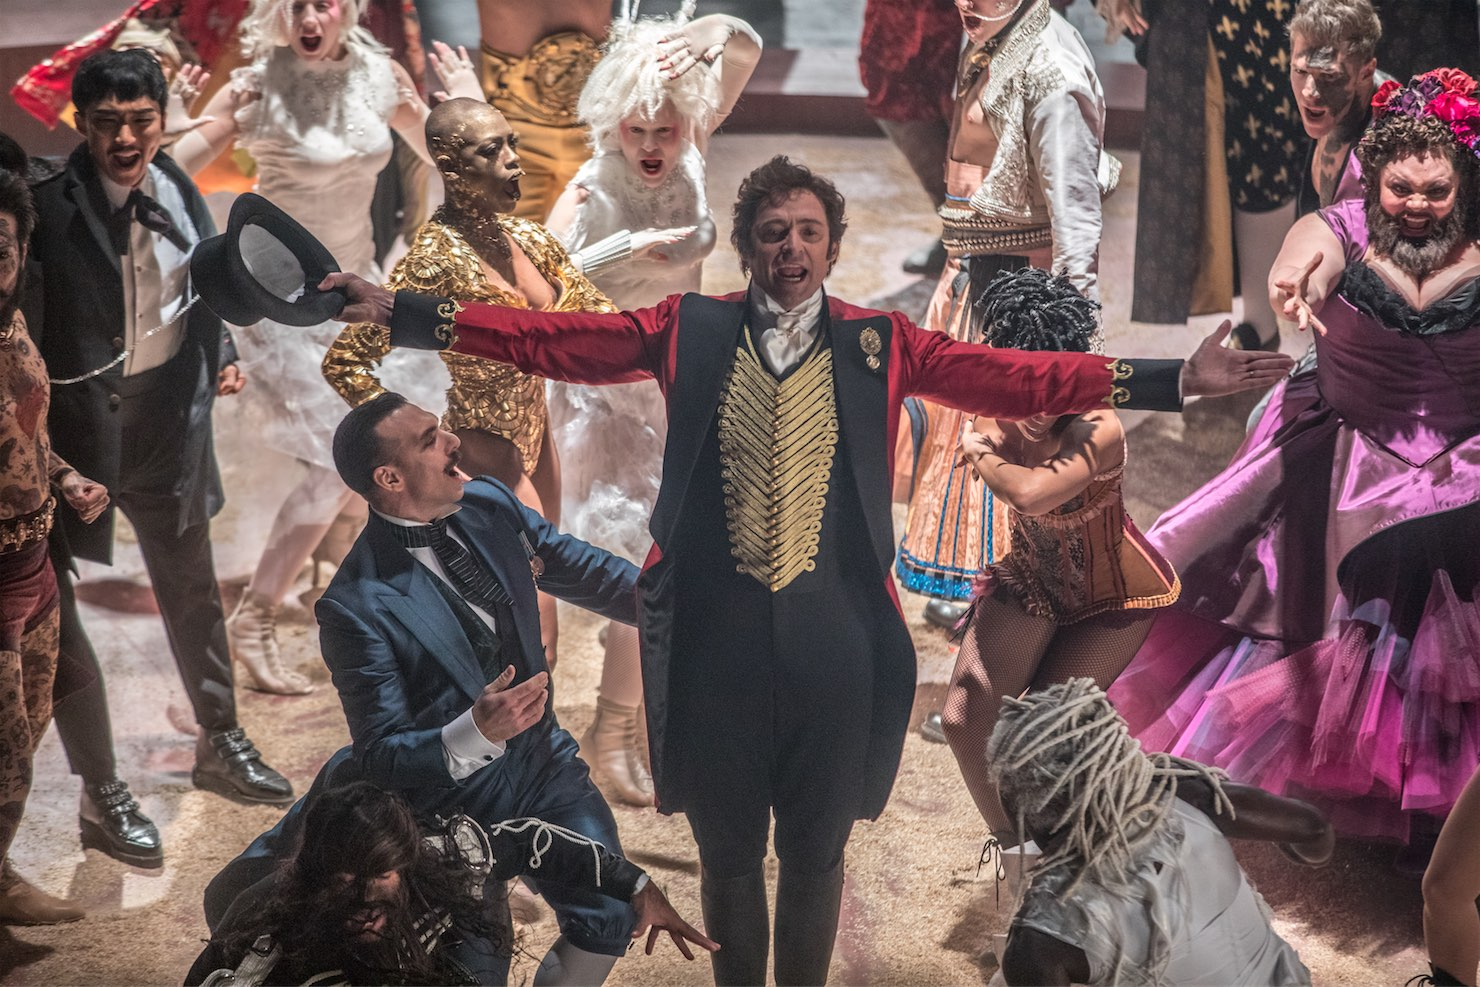 'The Greatest Showman' Trailer: Hugh Jackman Shows Off His Singing Chops